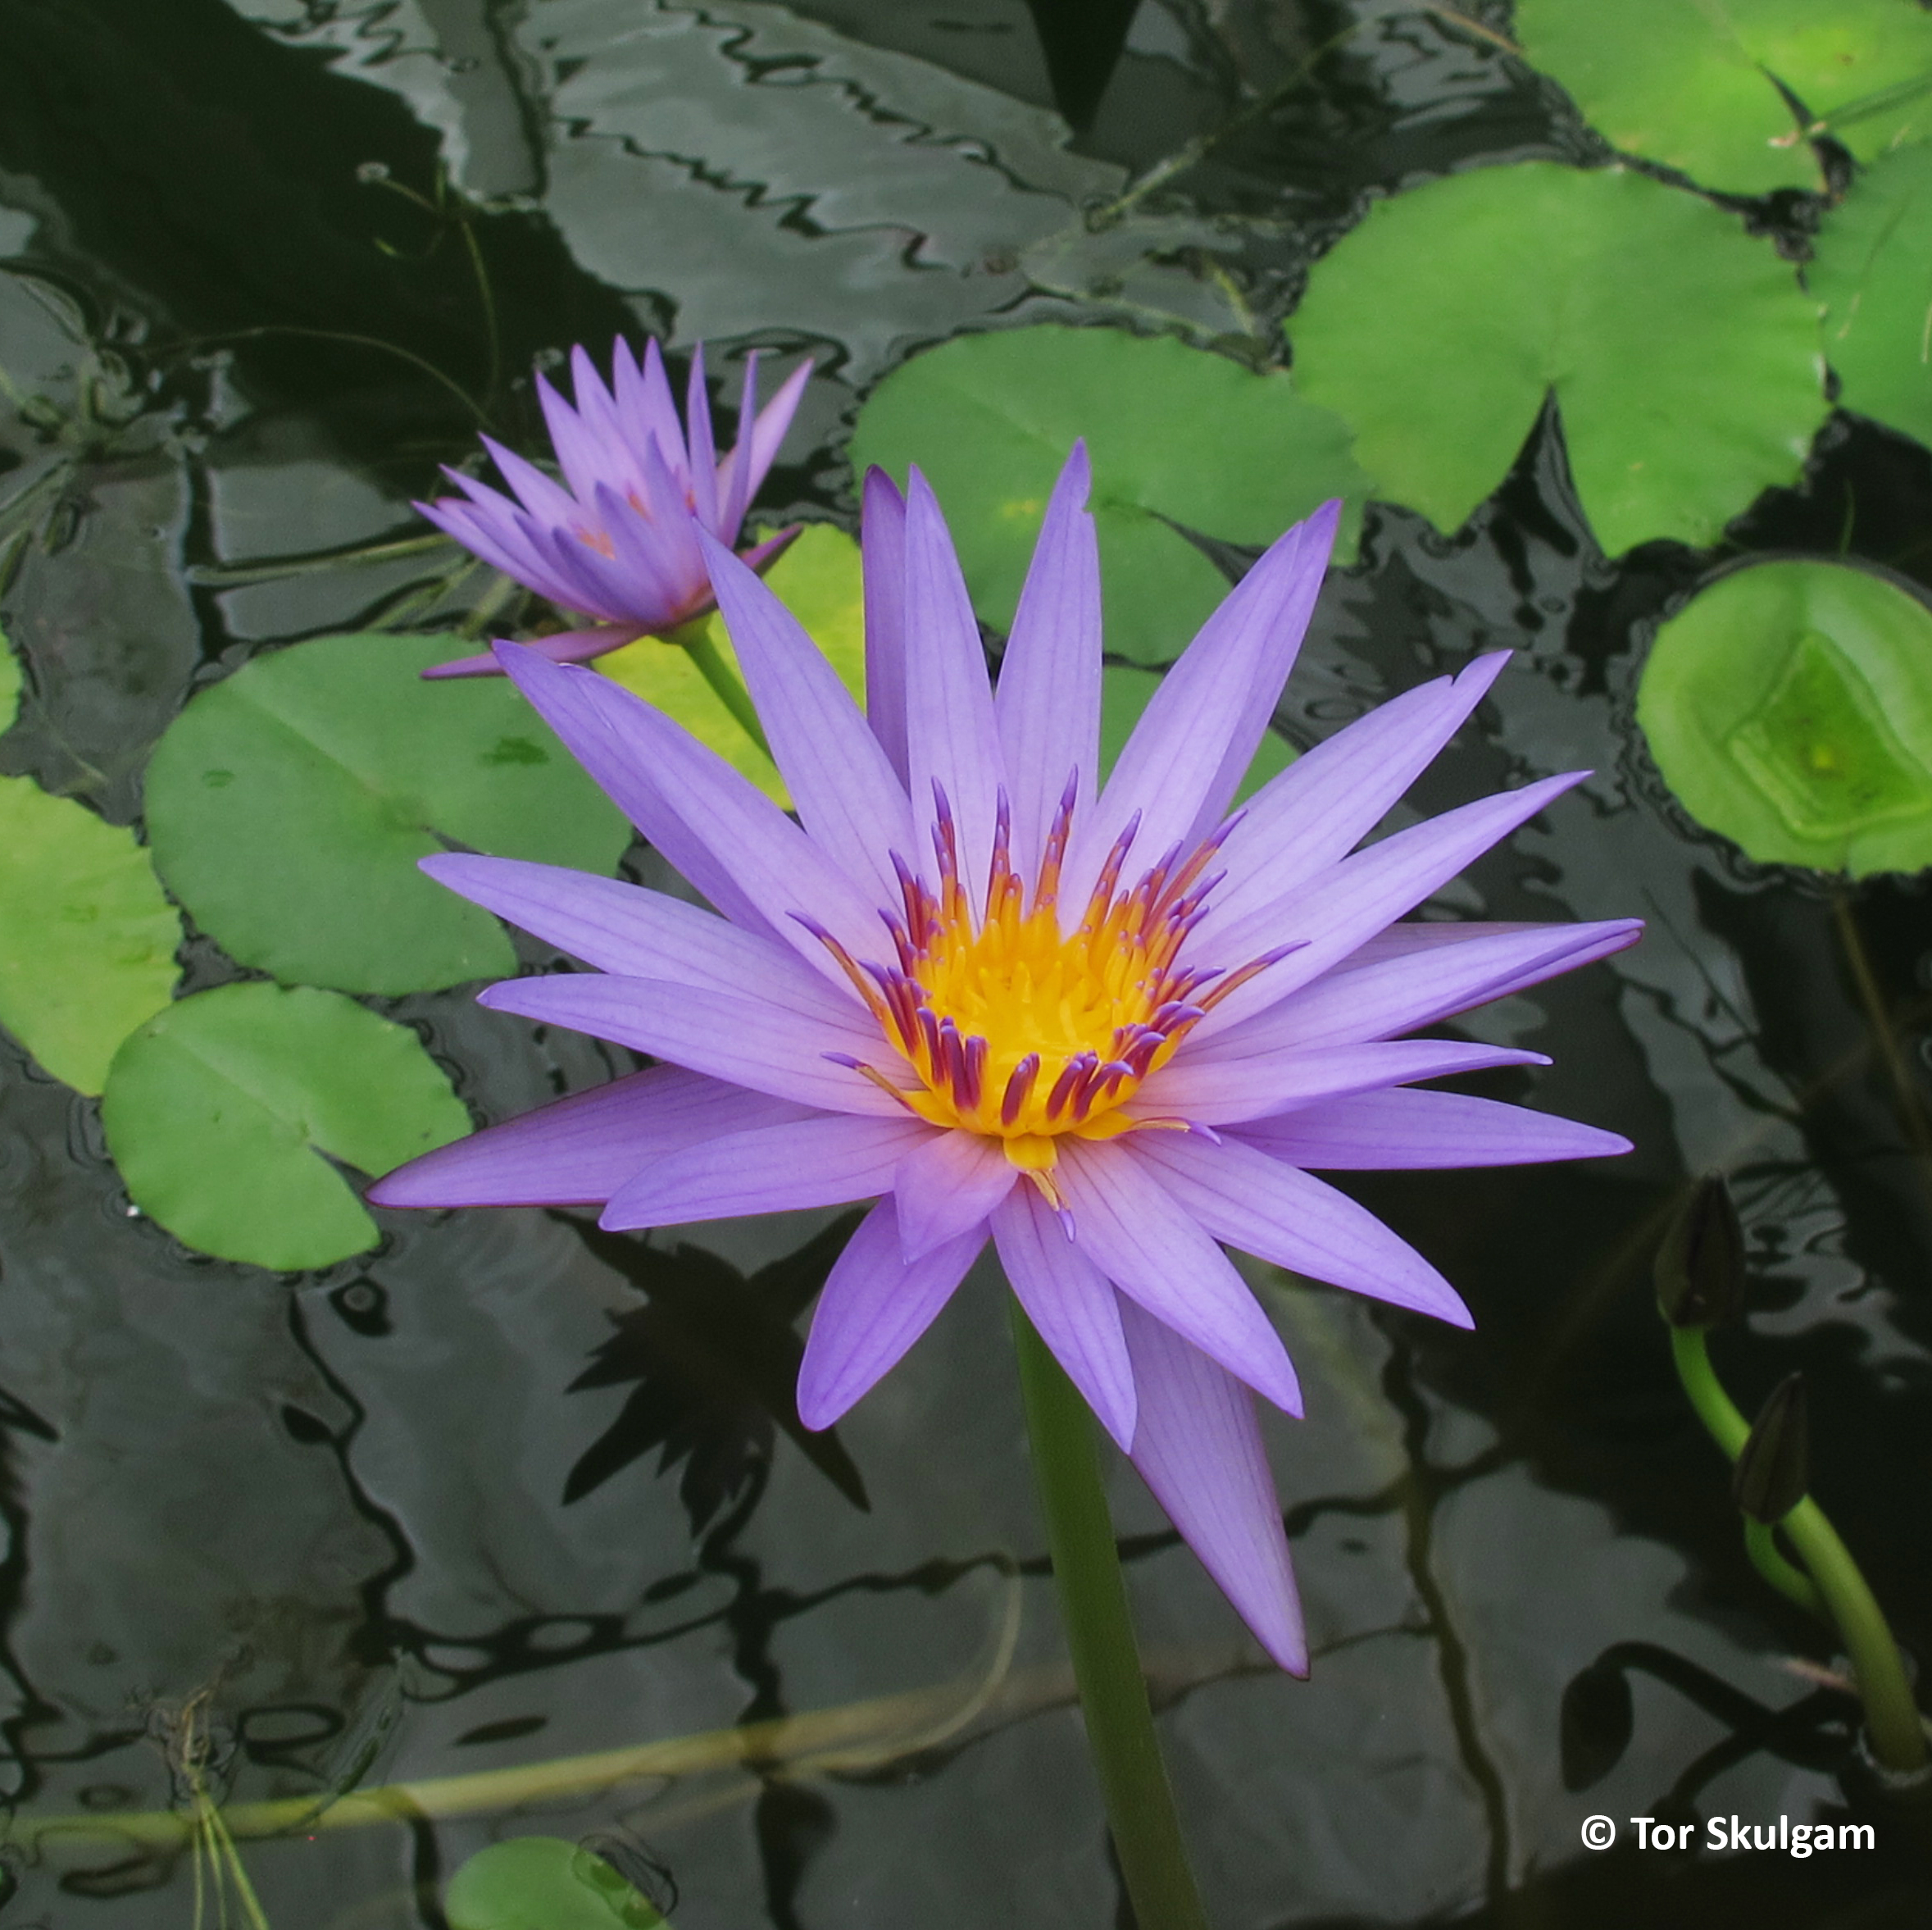 Nymphaea 'August Siebert' Eg NZ2017 IMG_3855